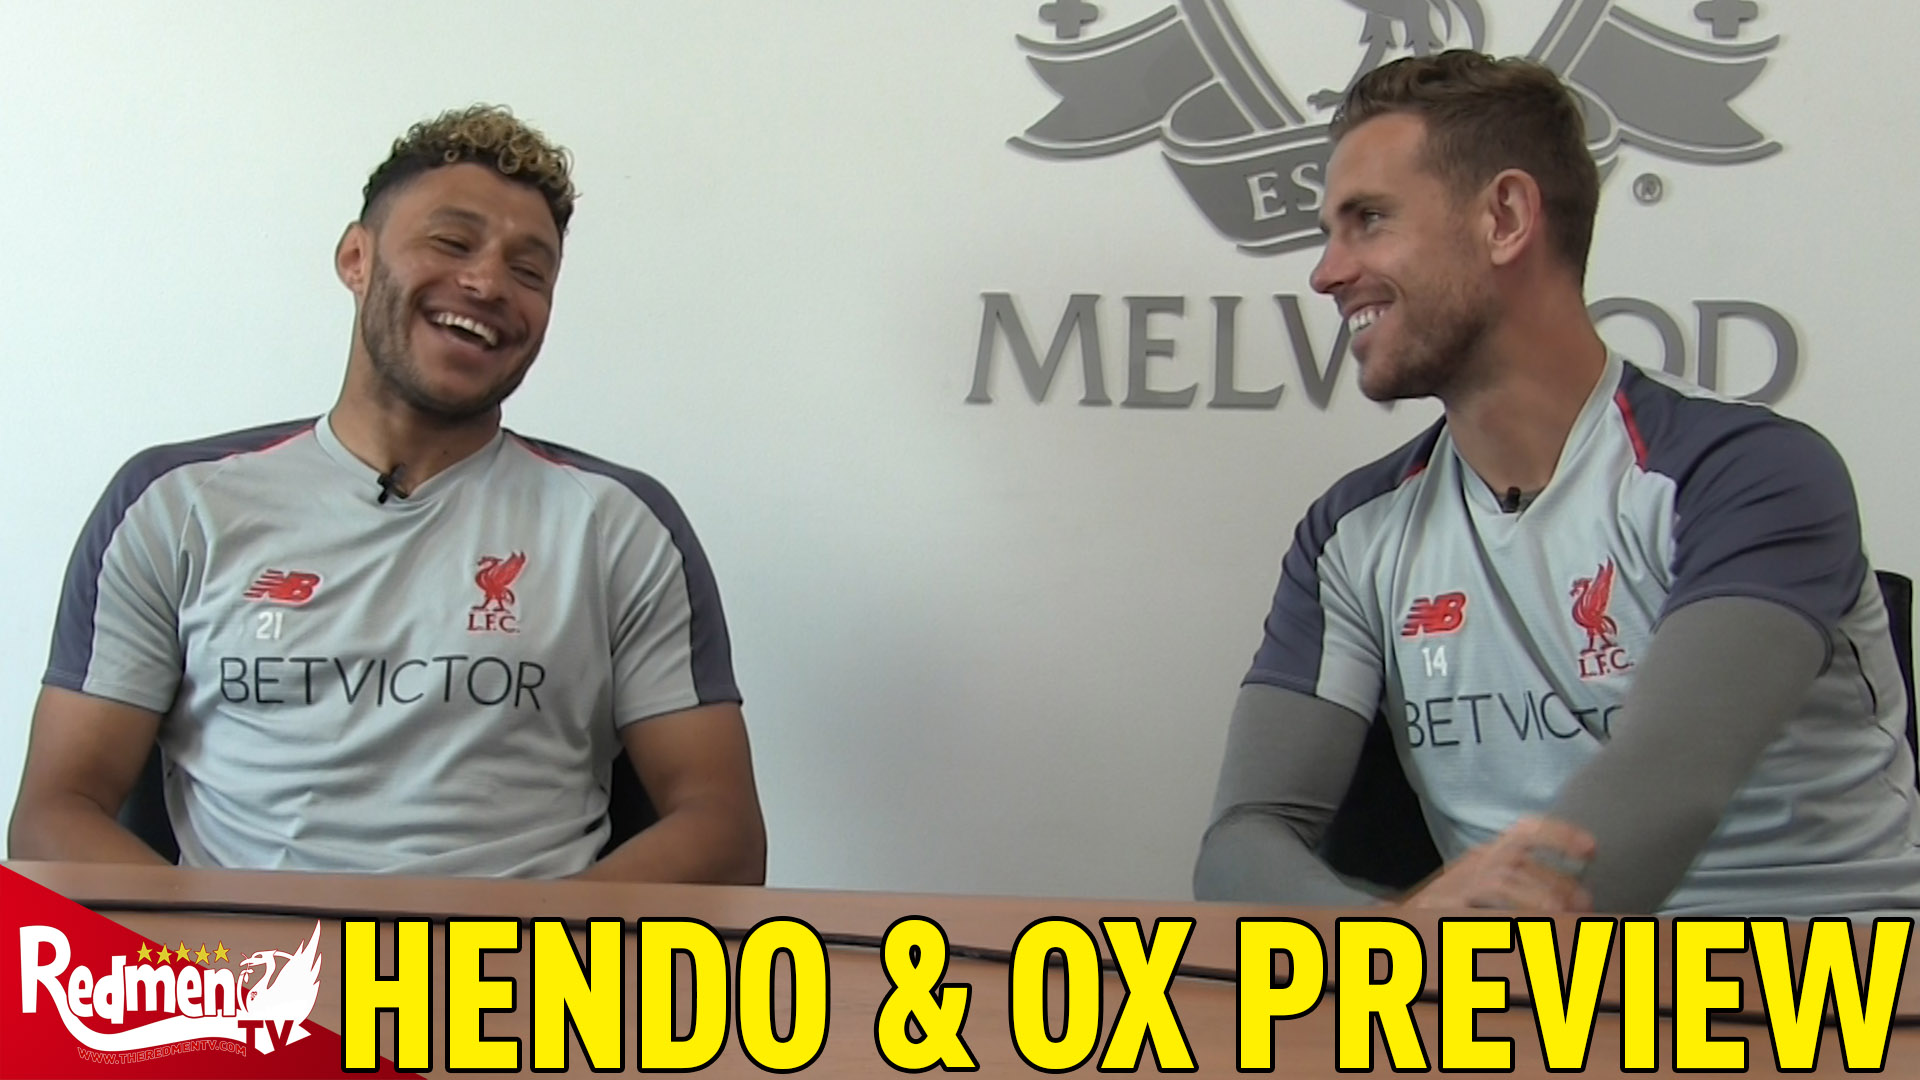 Champions League Final Preview with Hendo & Ox!